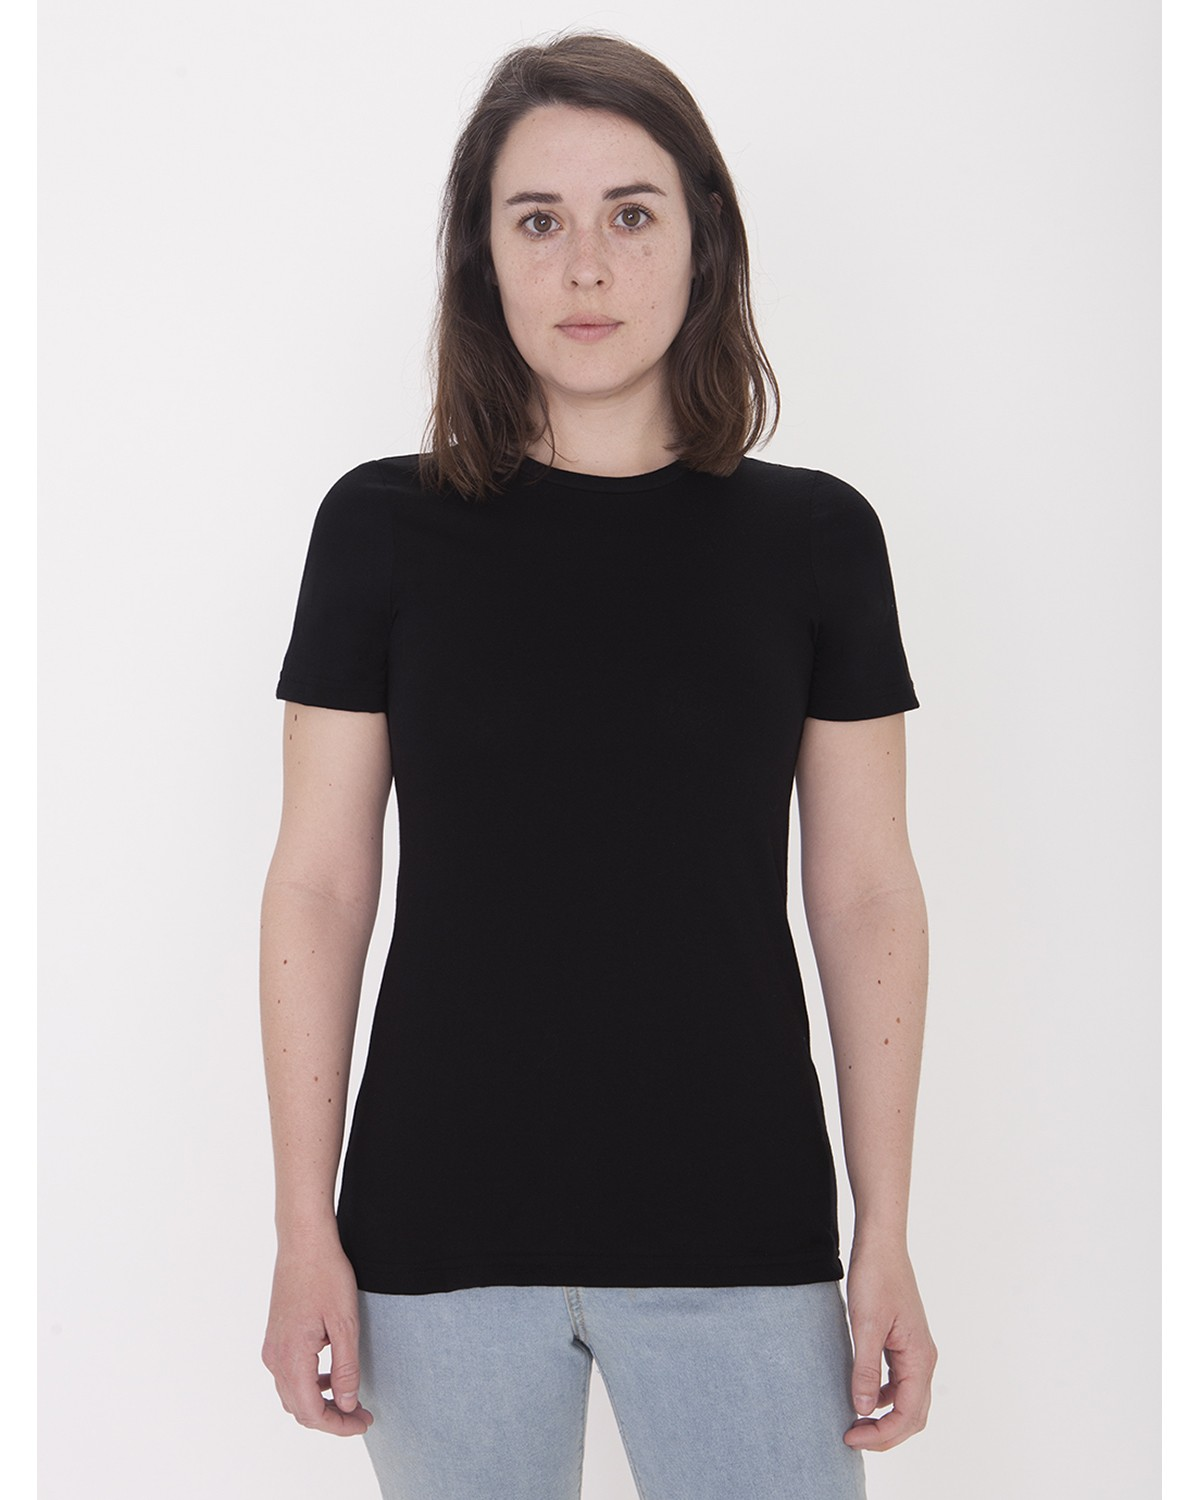 23215OW American Apparel BLACK